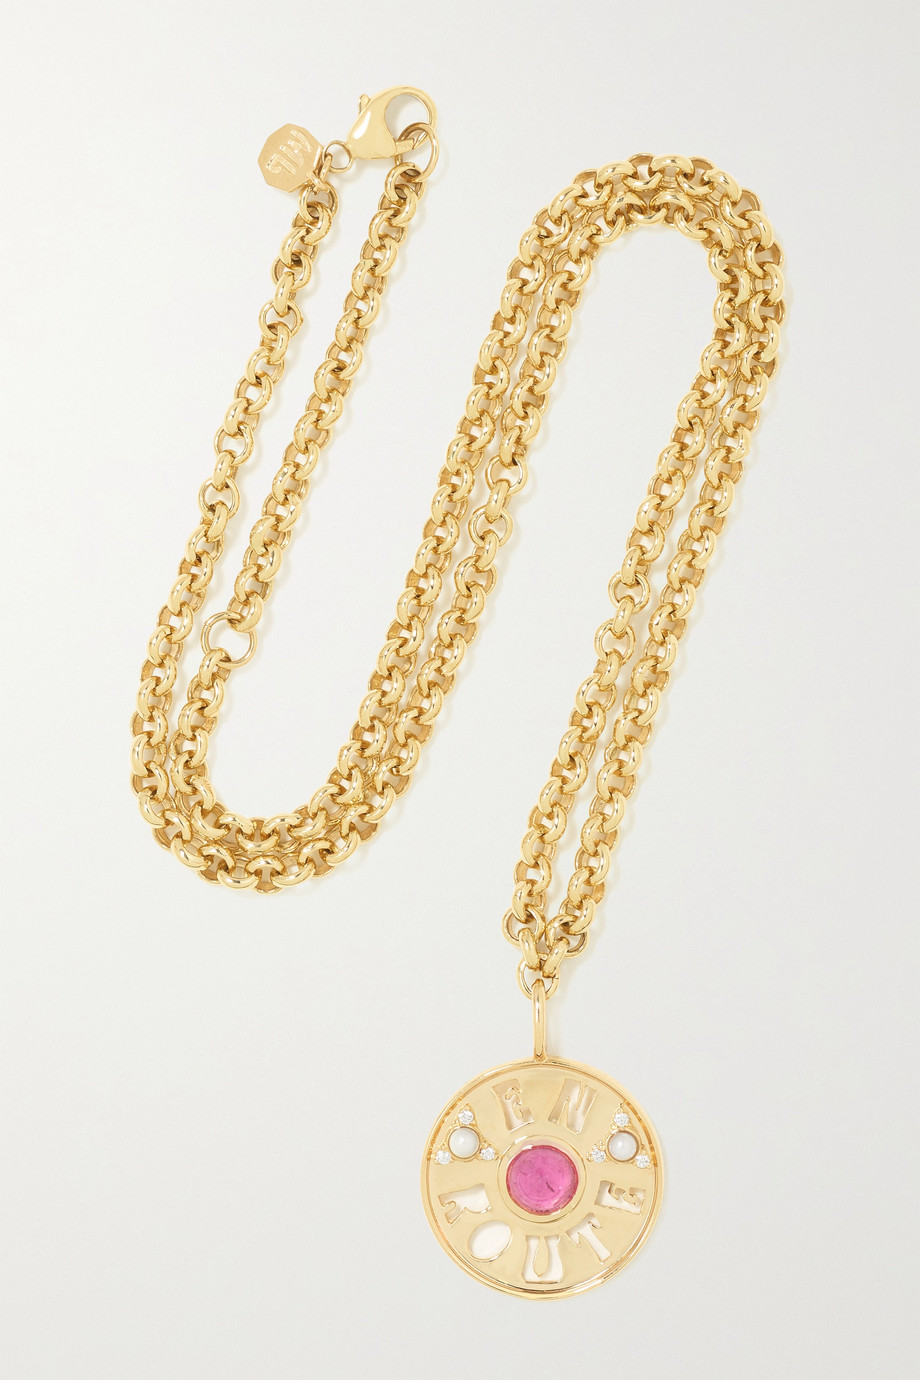 MARLO LAZ En Route 14-karat gold multi-stone necklace